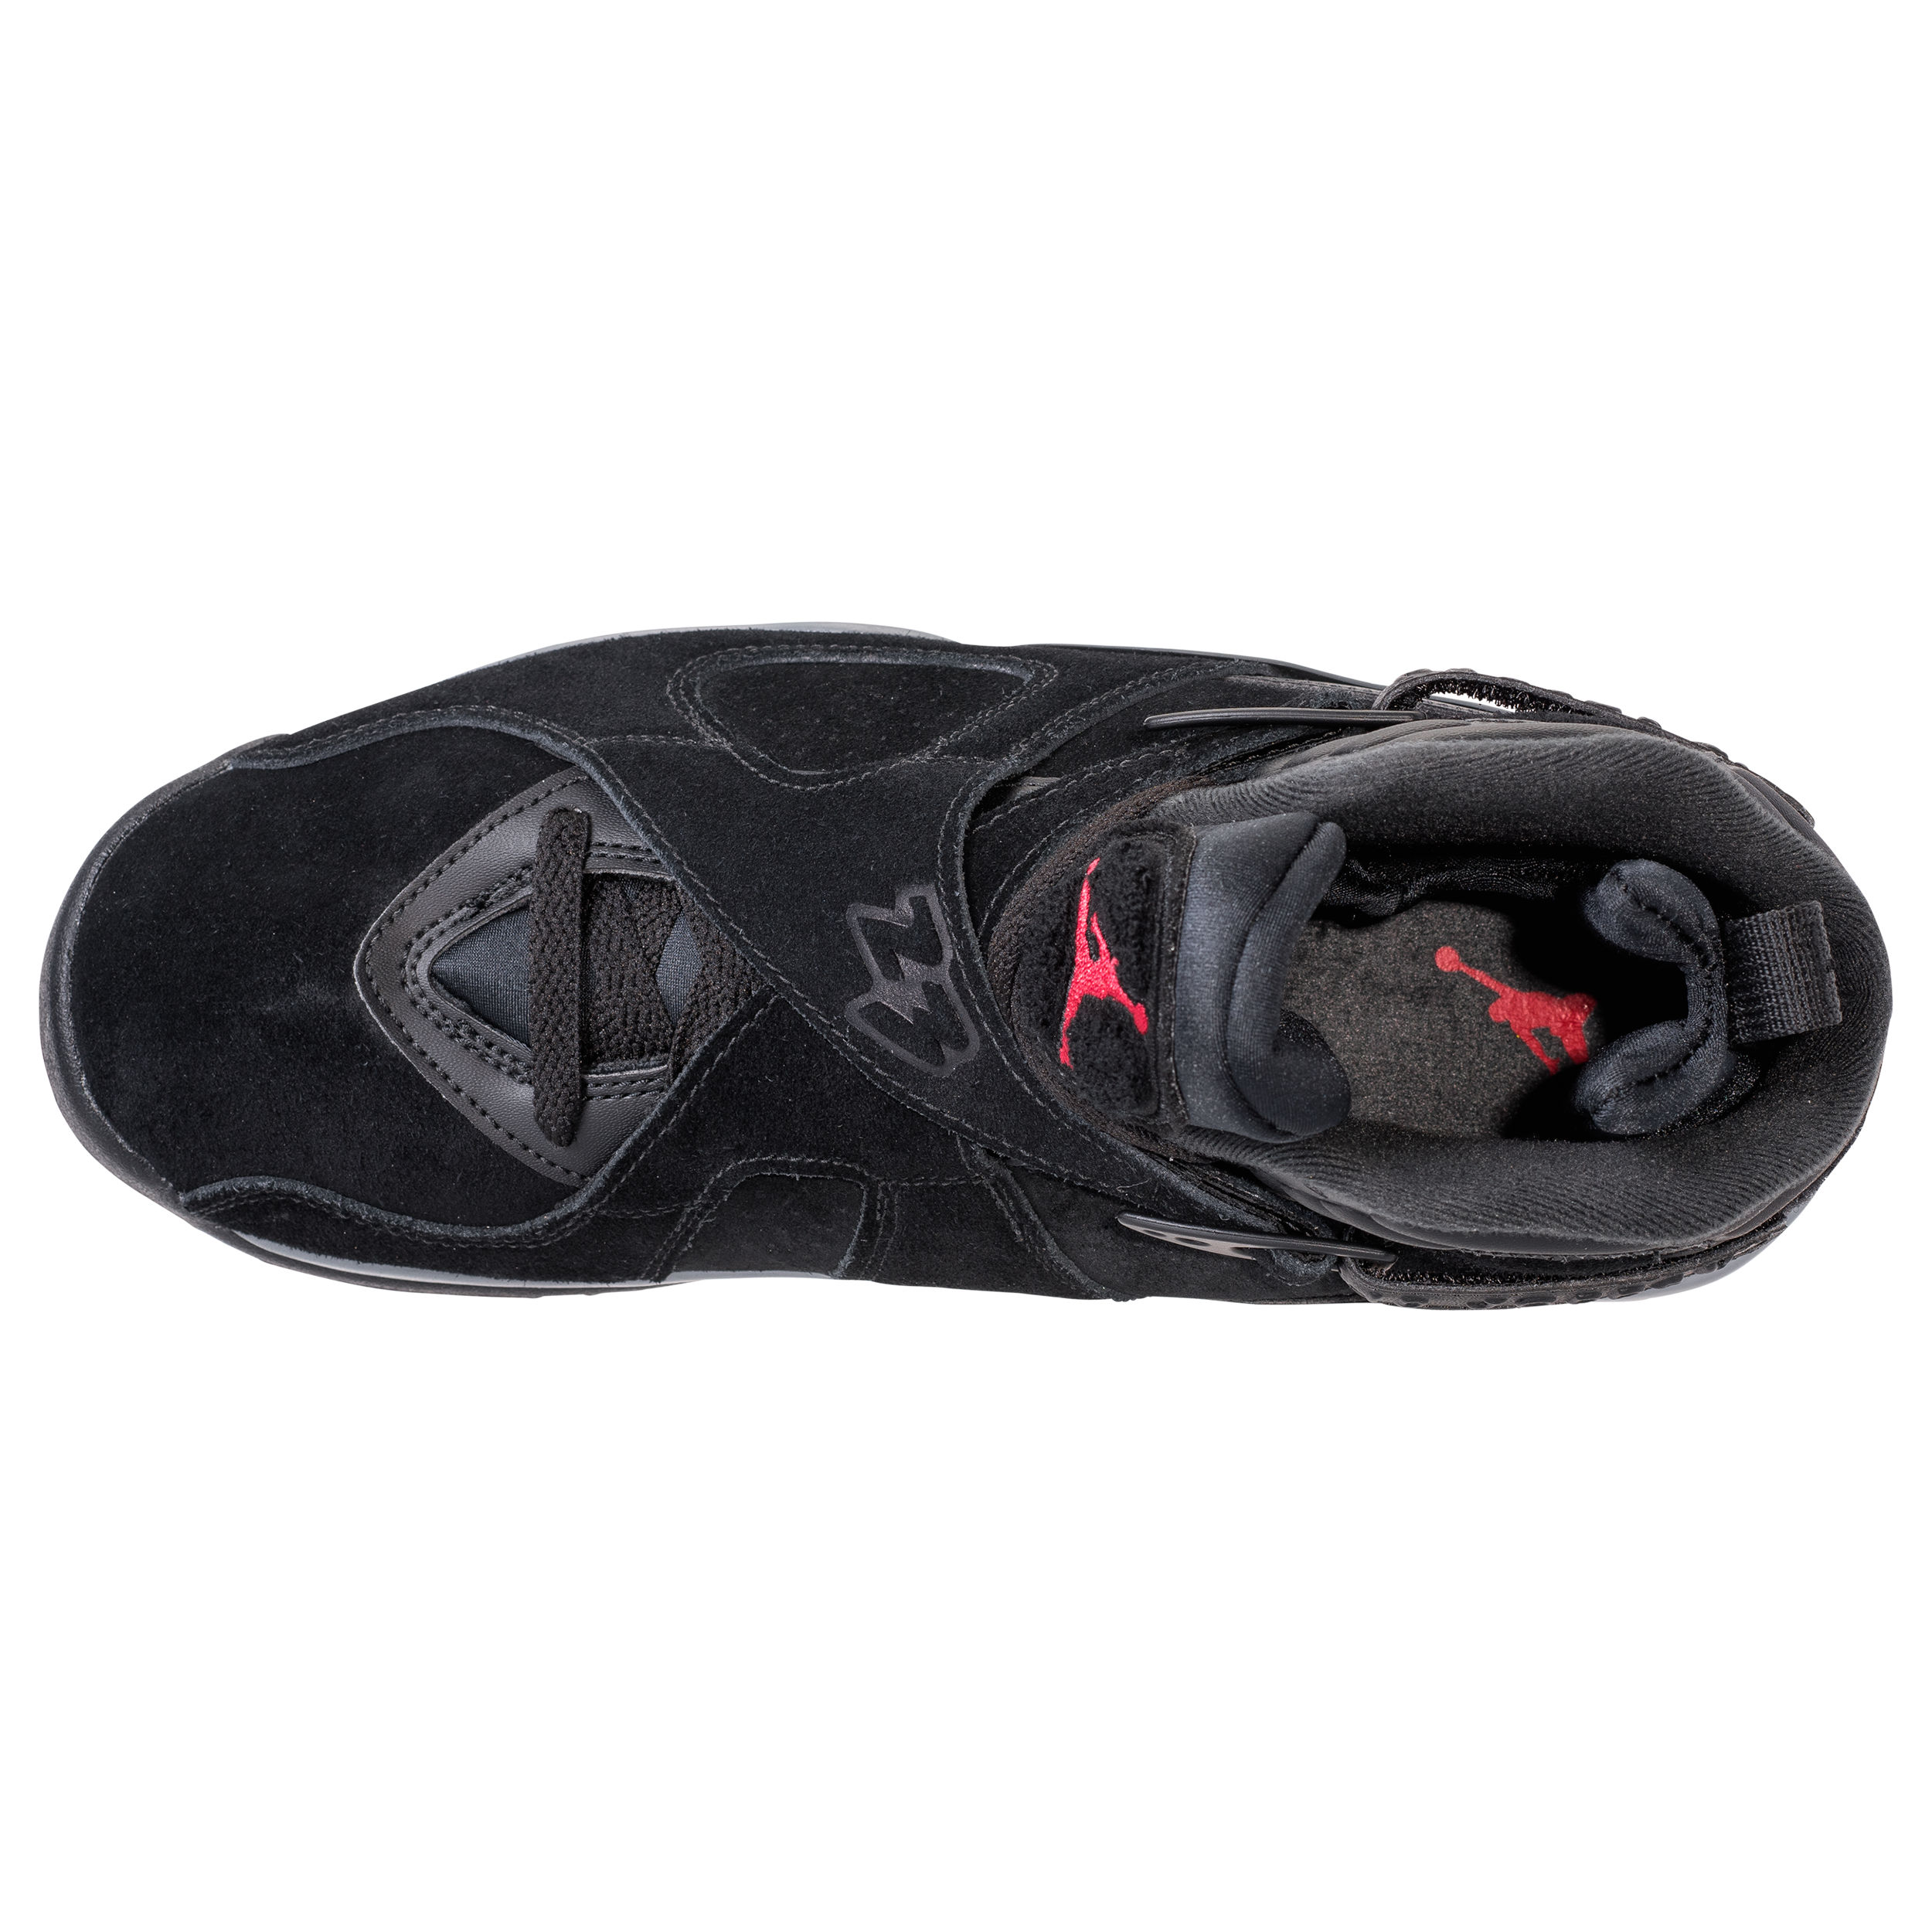 outlet store d40c2 49958 air jordan 8 retro black gym red 6